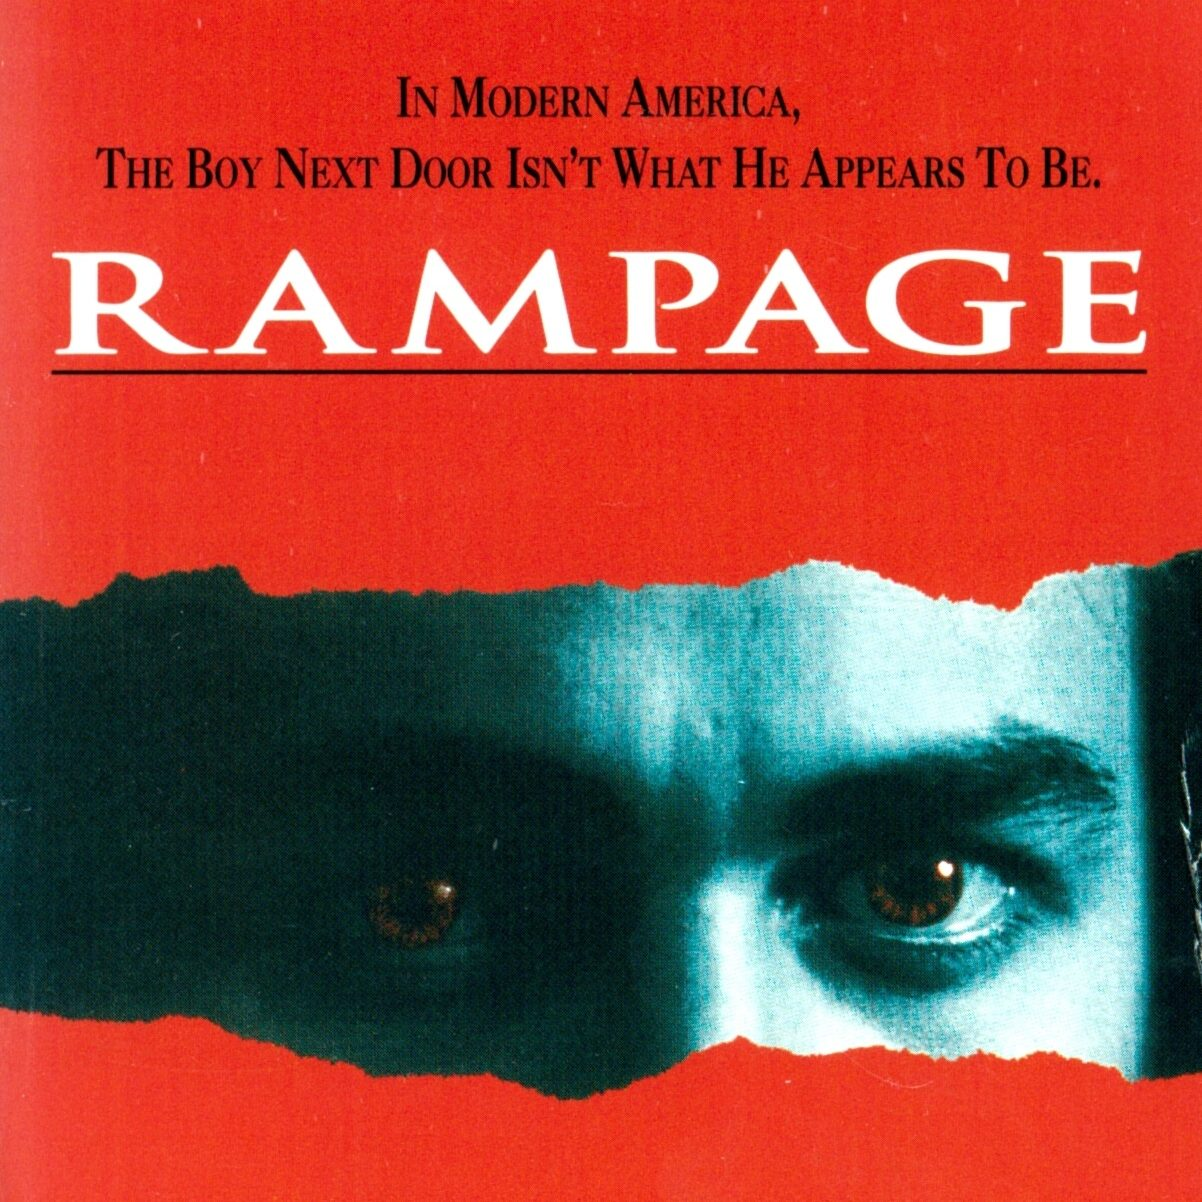 22422 rampage paramount12028VHSCollector.com29 e1601037763658 20 Things You Never Knew About Michael Biehn